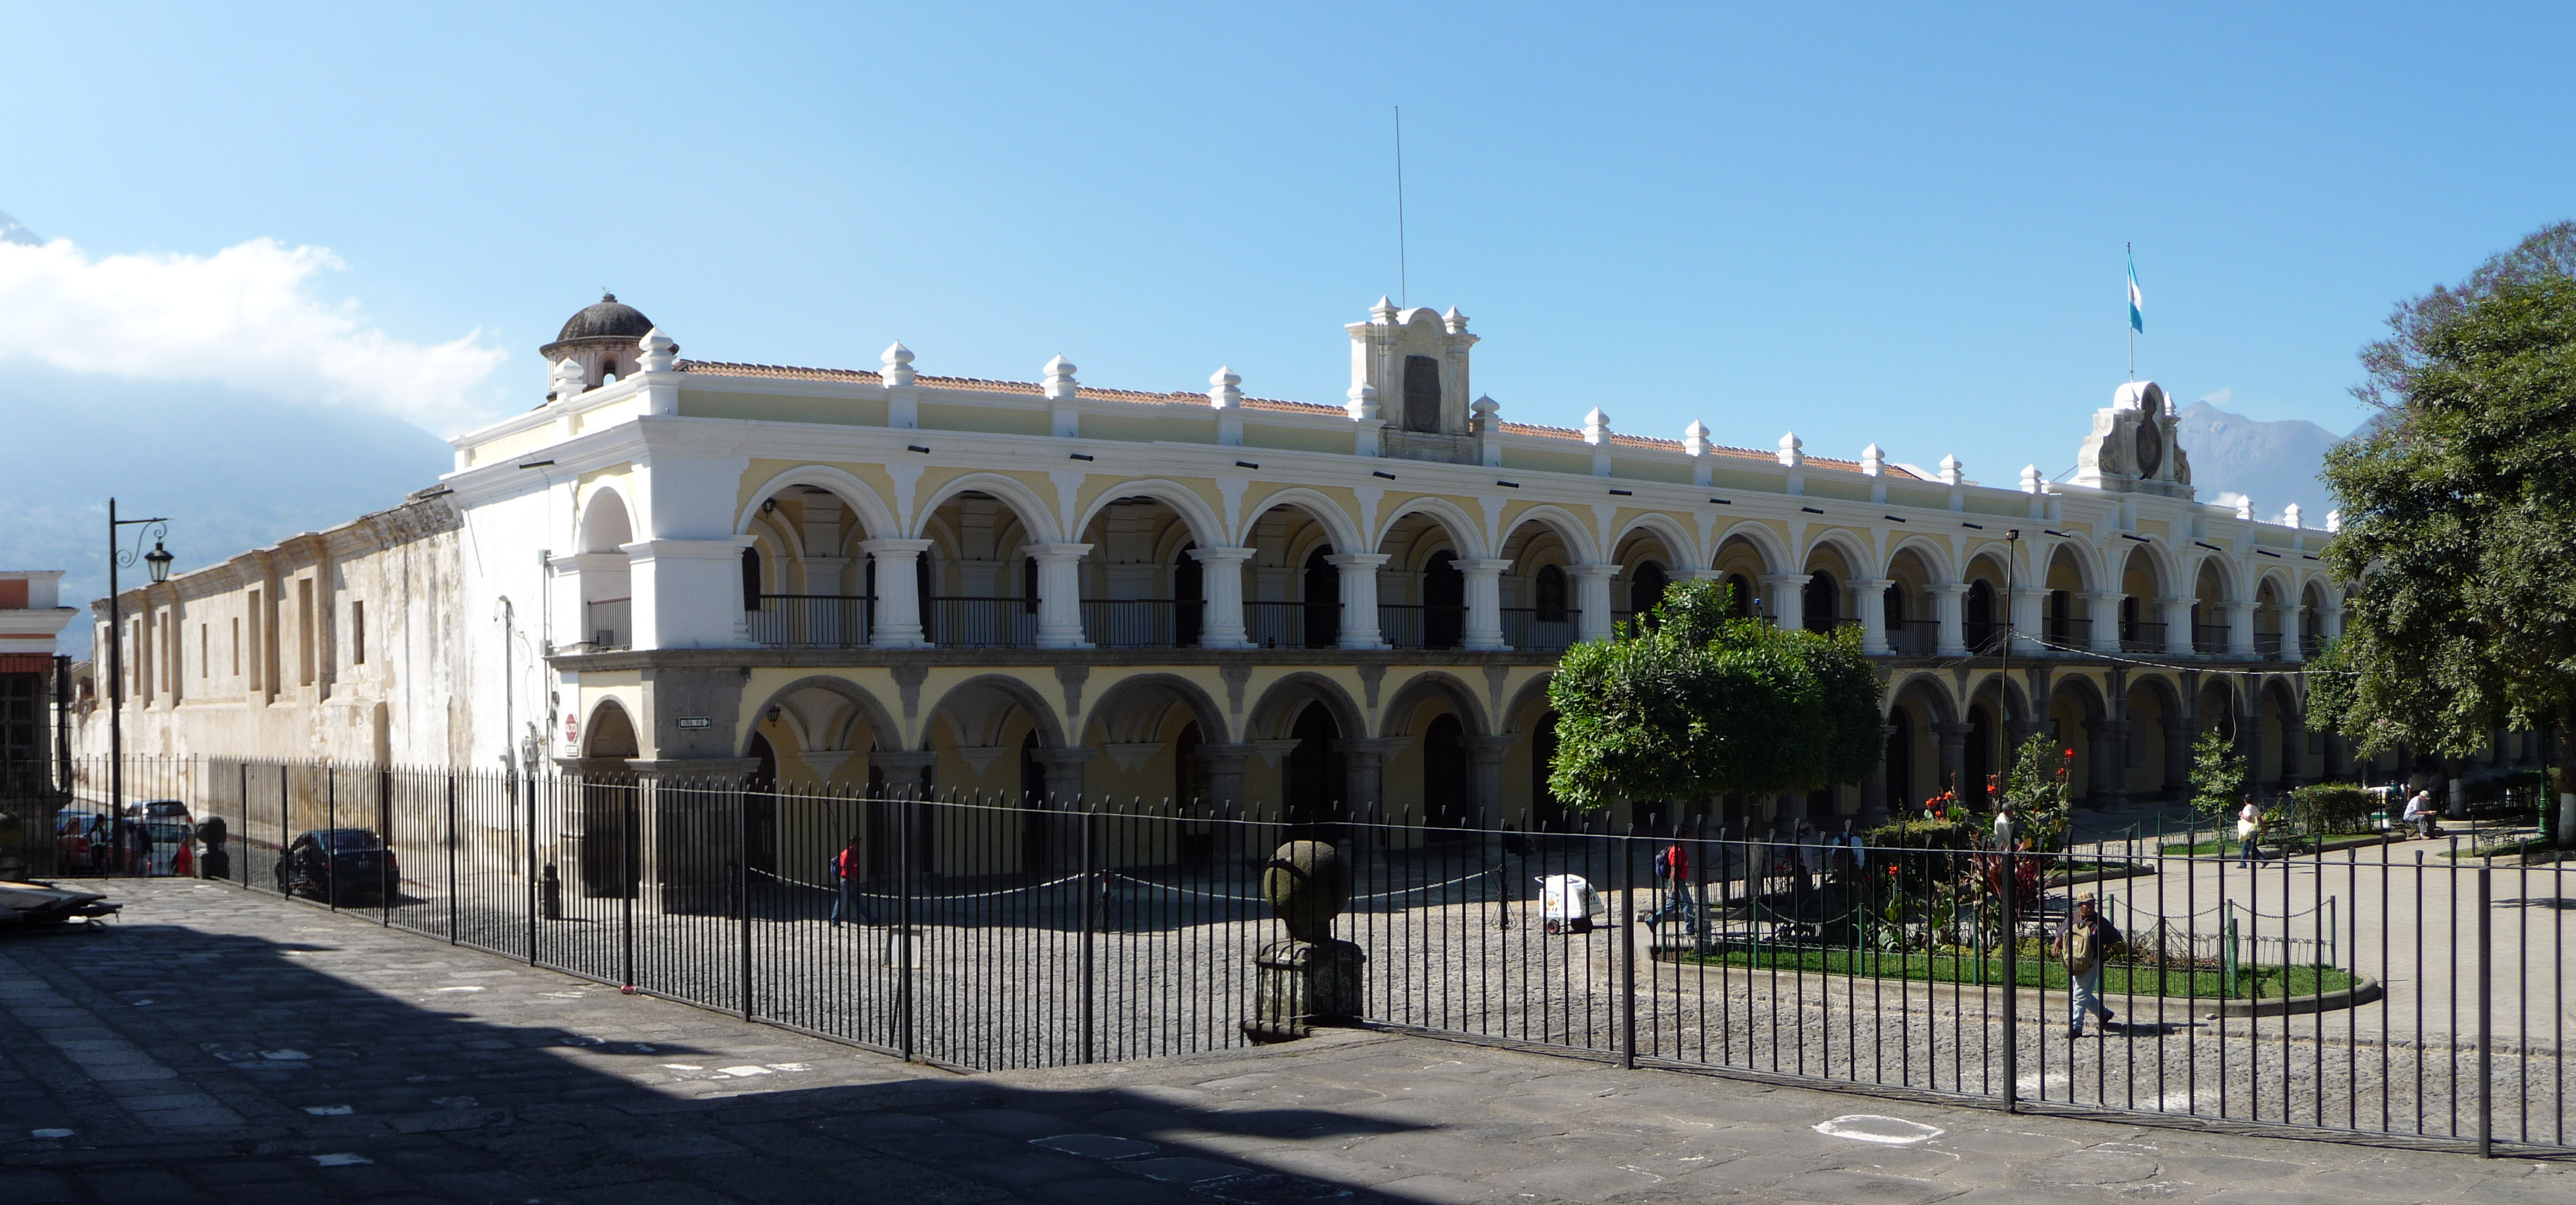 The Palace of the General Captains in Antigua (Sacatepéquez, Guatemala). Photo taken on January 31, 2011.